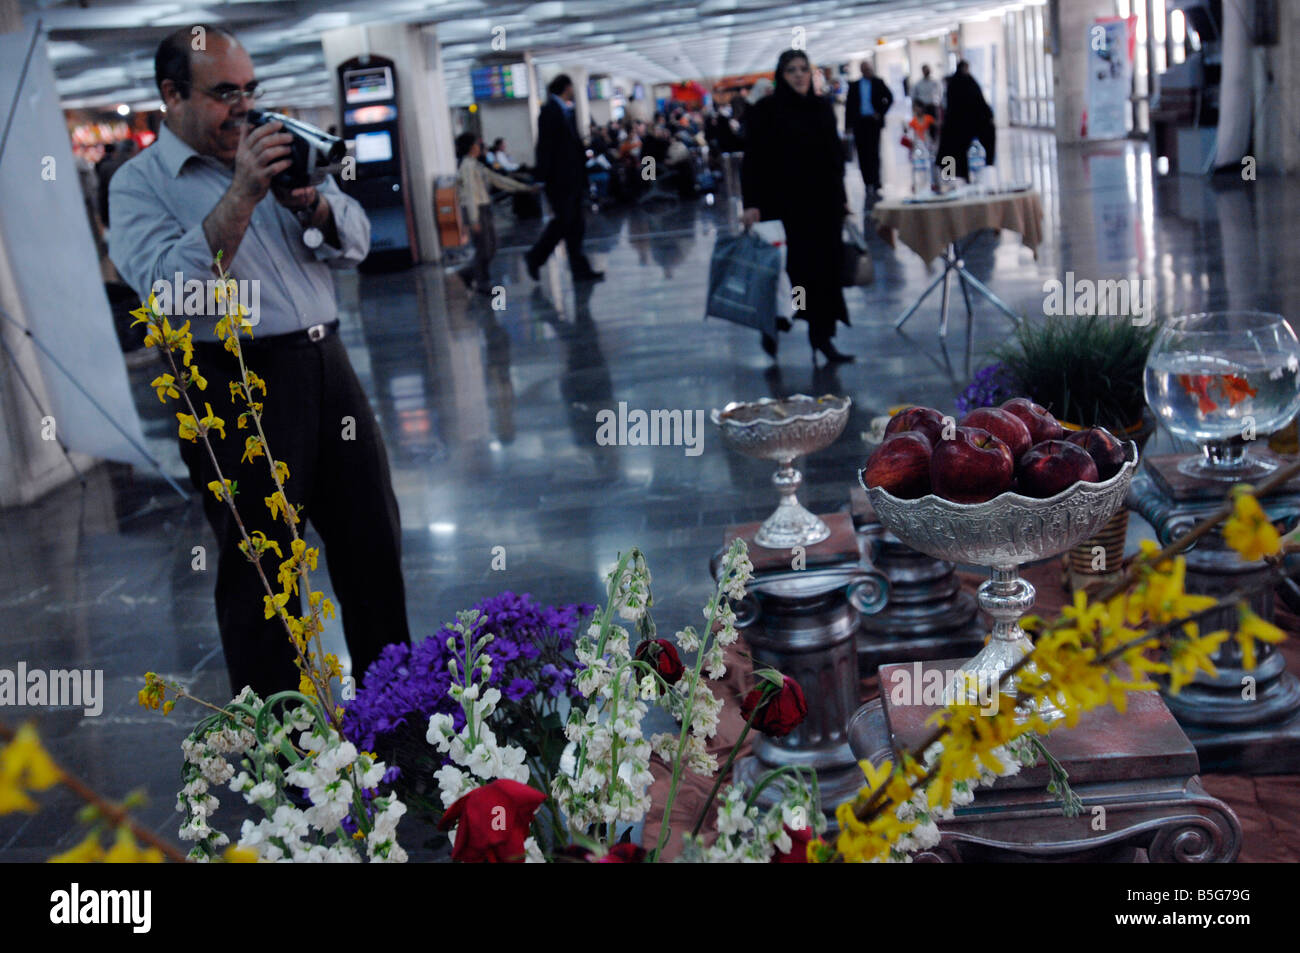 A middle aged Iranian man films a traditional New Year or No Ruz display at Mehrabad Airport - Stock Image